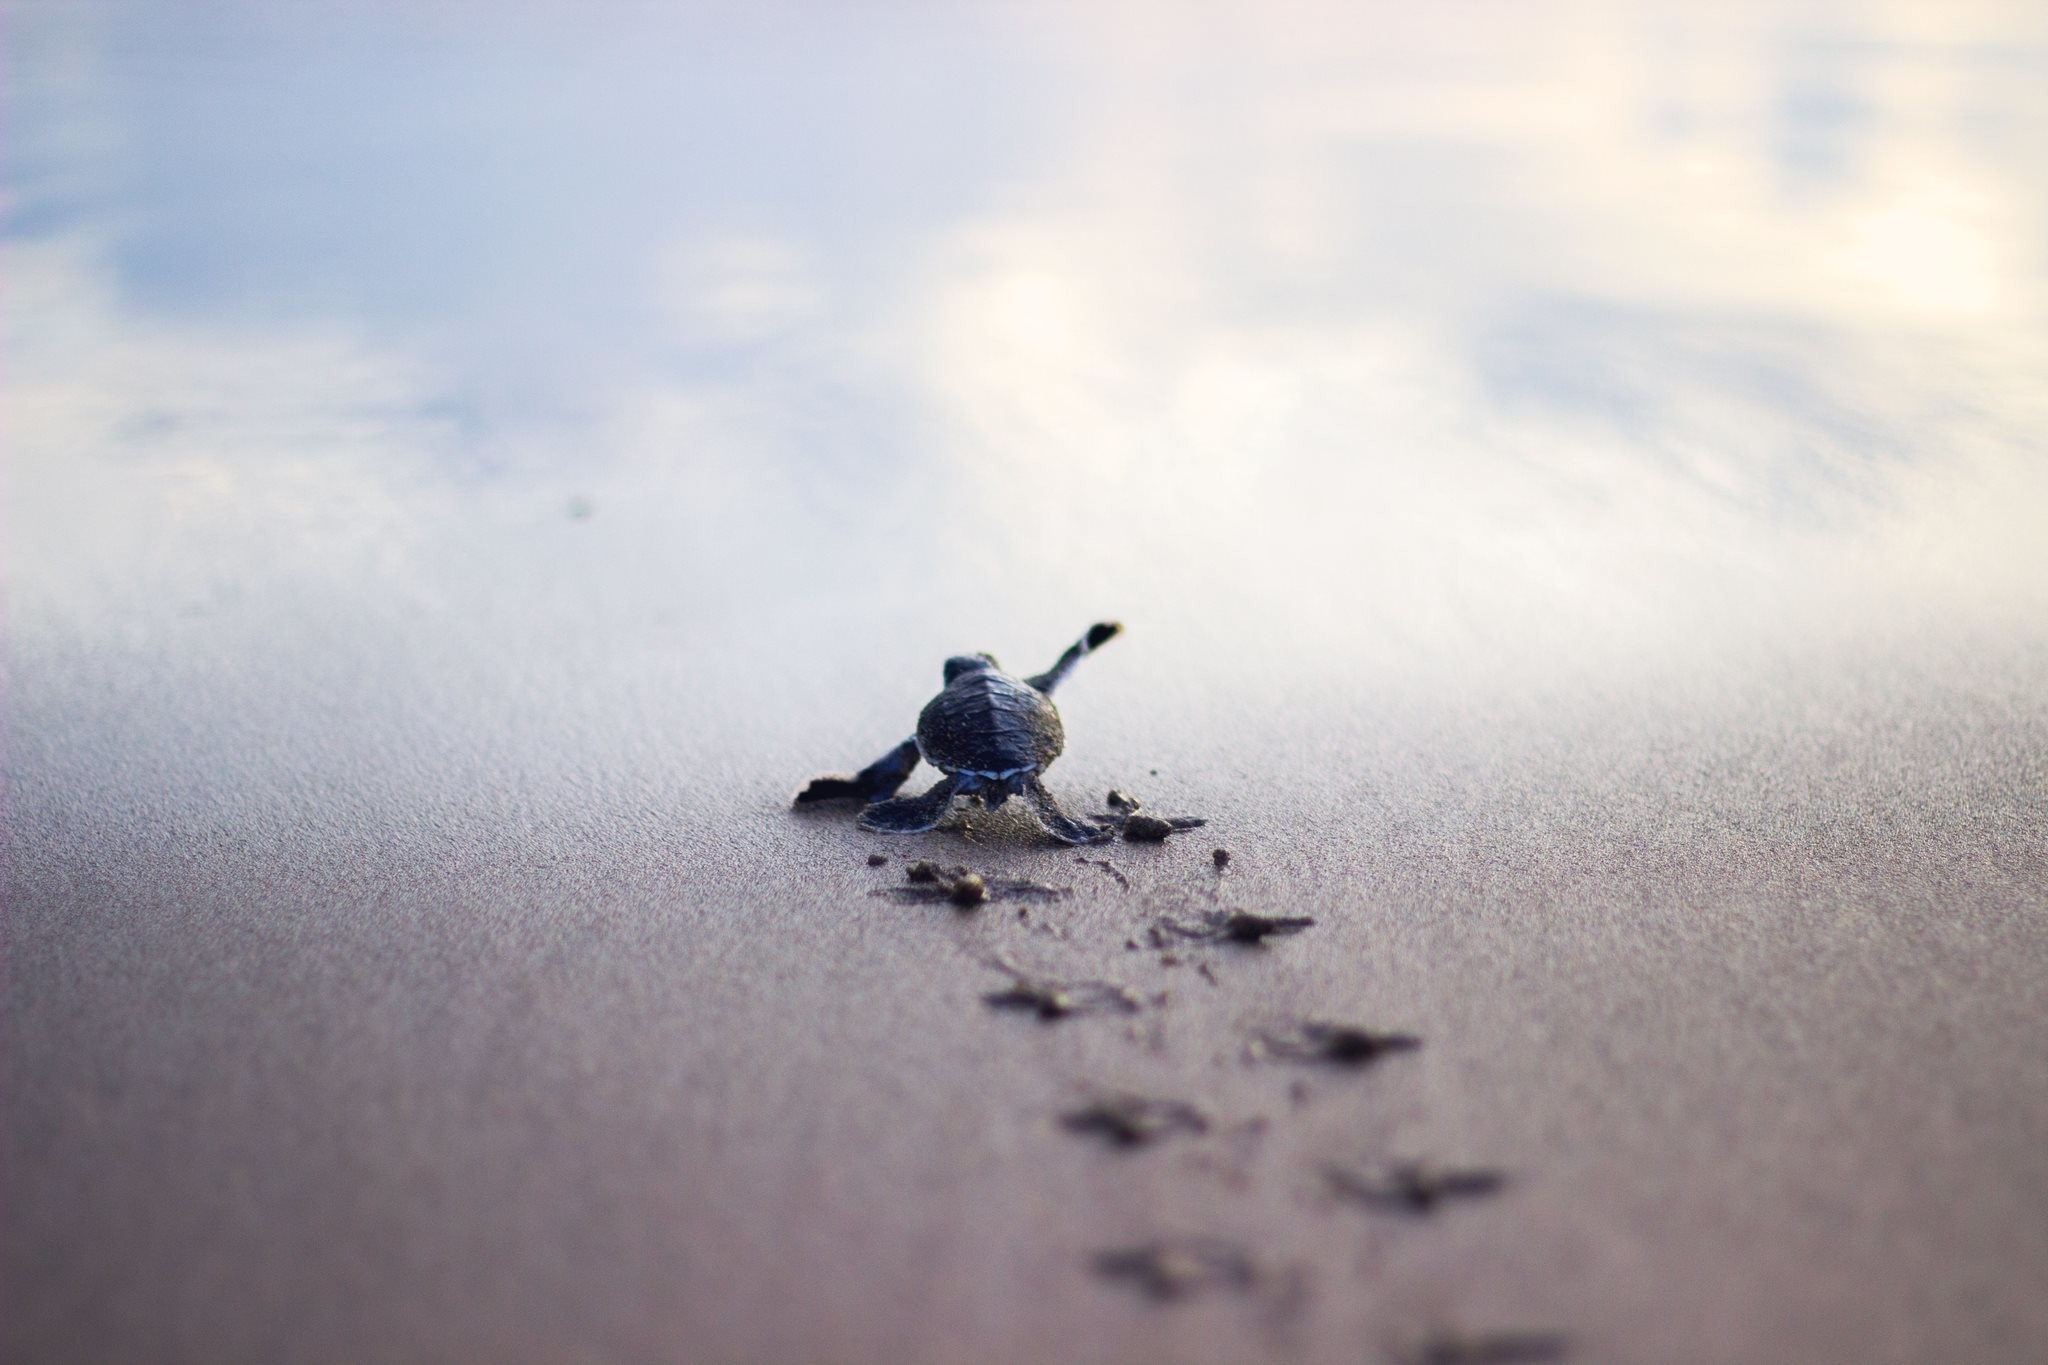 Baby Sea Turtle Wallpaper 55 Images